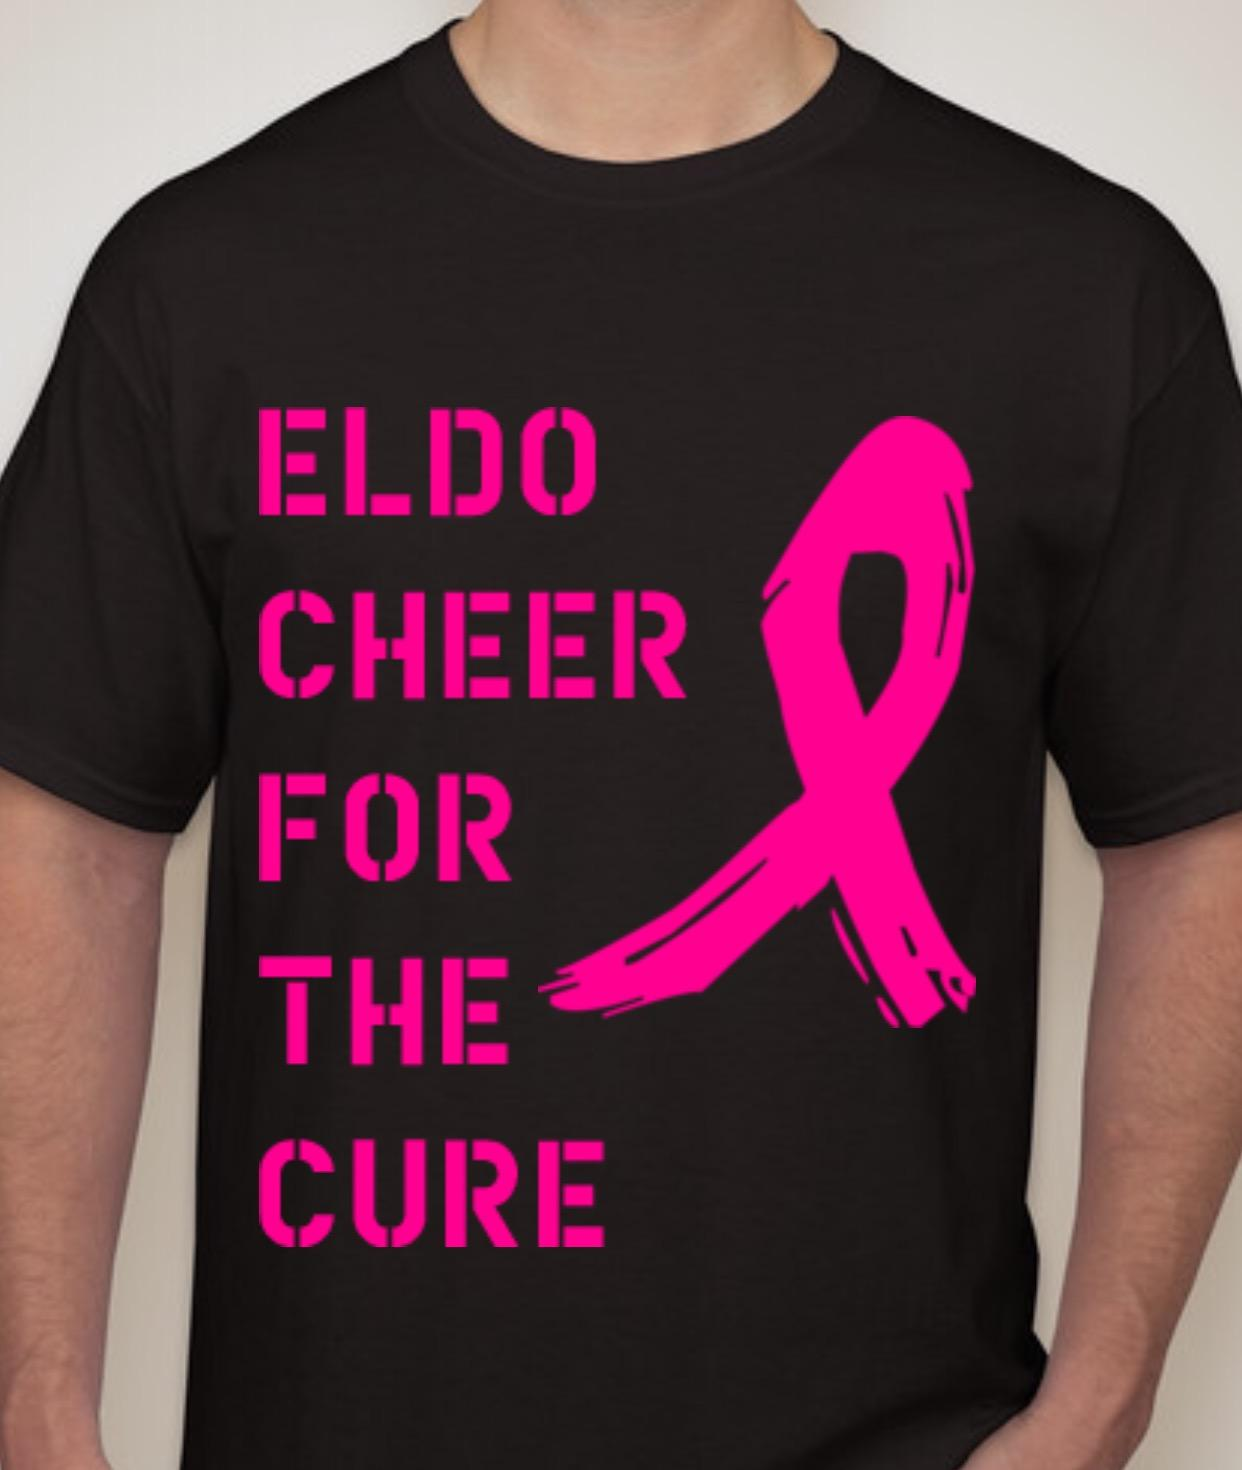 ELDO CHEER FOR THE CURE